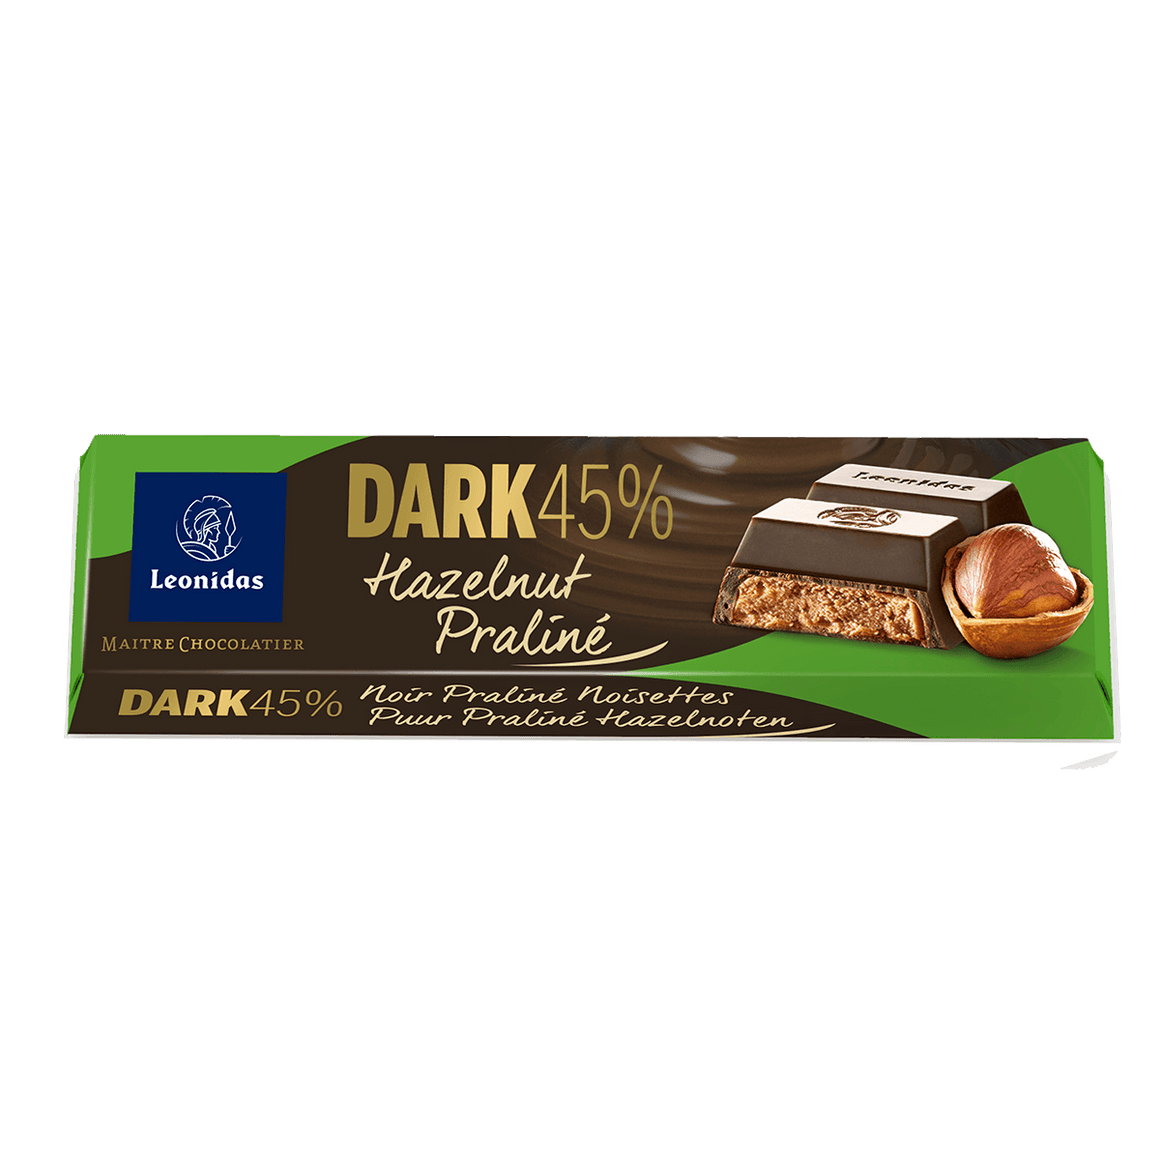 Batons Dark Chocolate (45%) with Hazelnut Praline Pack (6 x 50g)